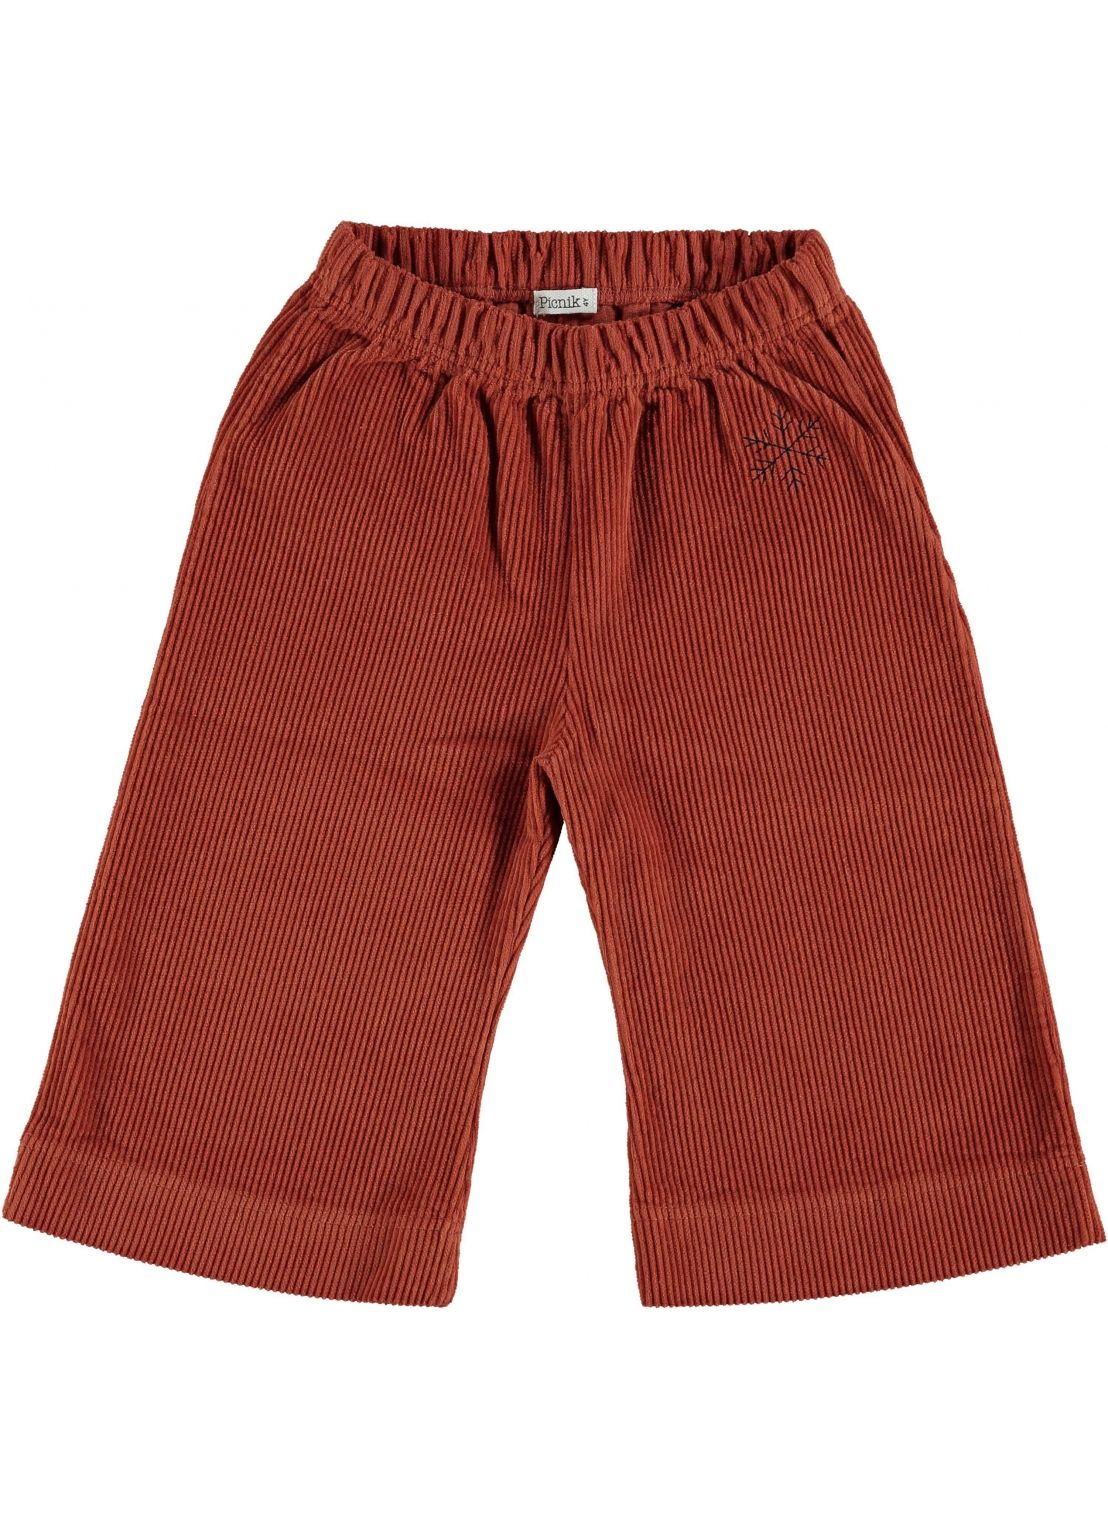 Kid TROUSERS  Unisex -100% Cotton-Knitted